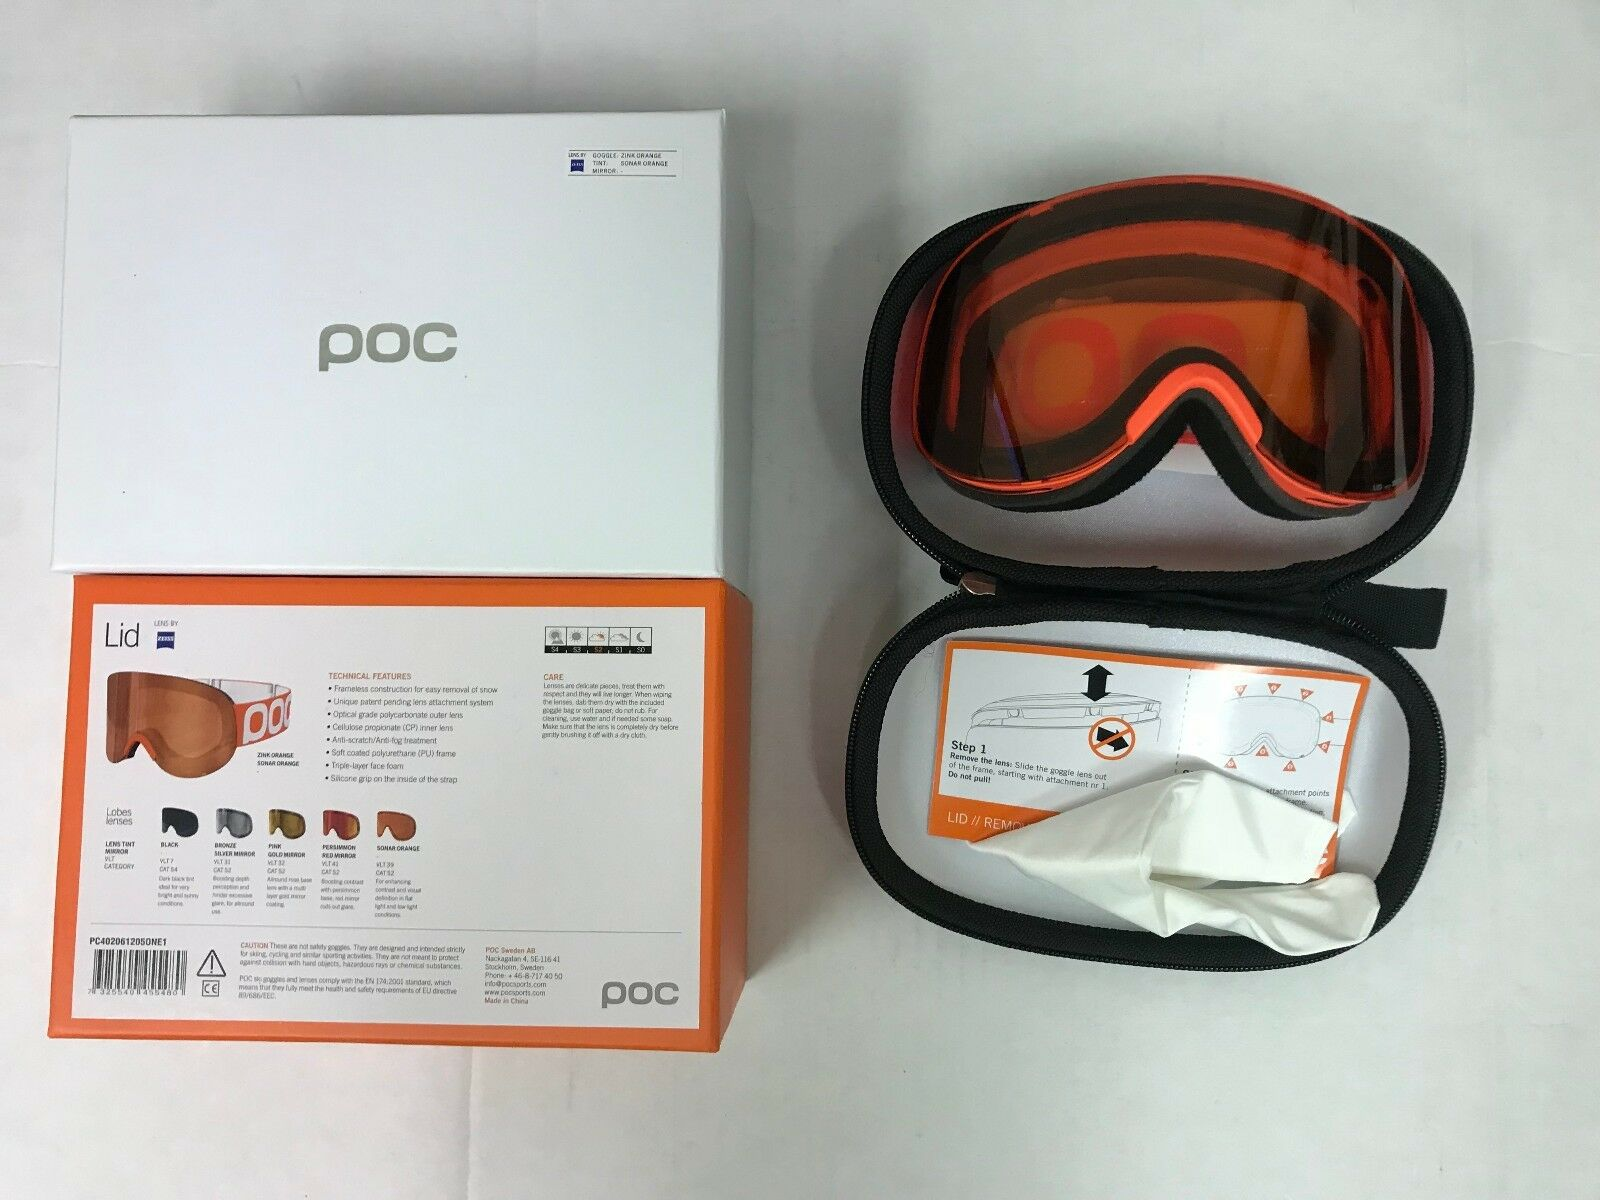 POC Lid Ski Goggles ZINK orange SONAR orange tint with mirror